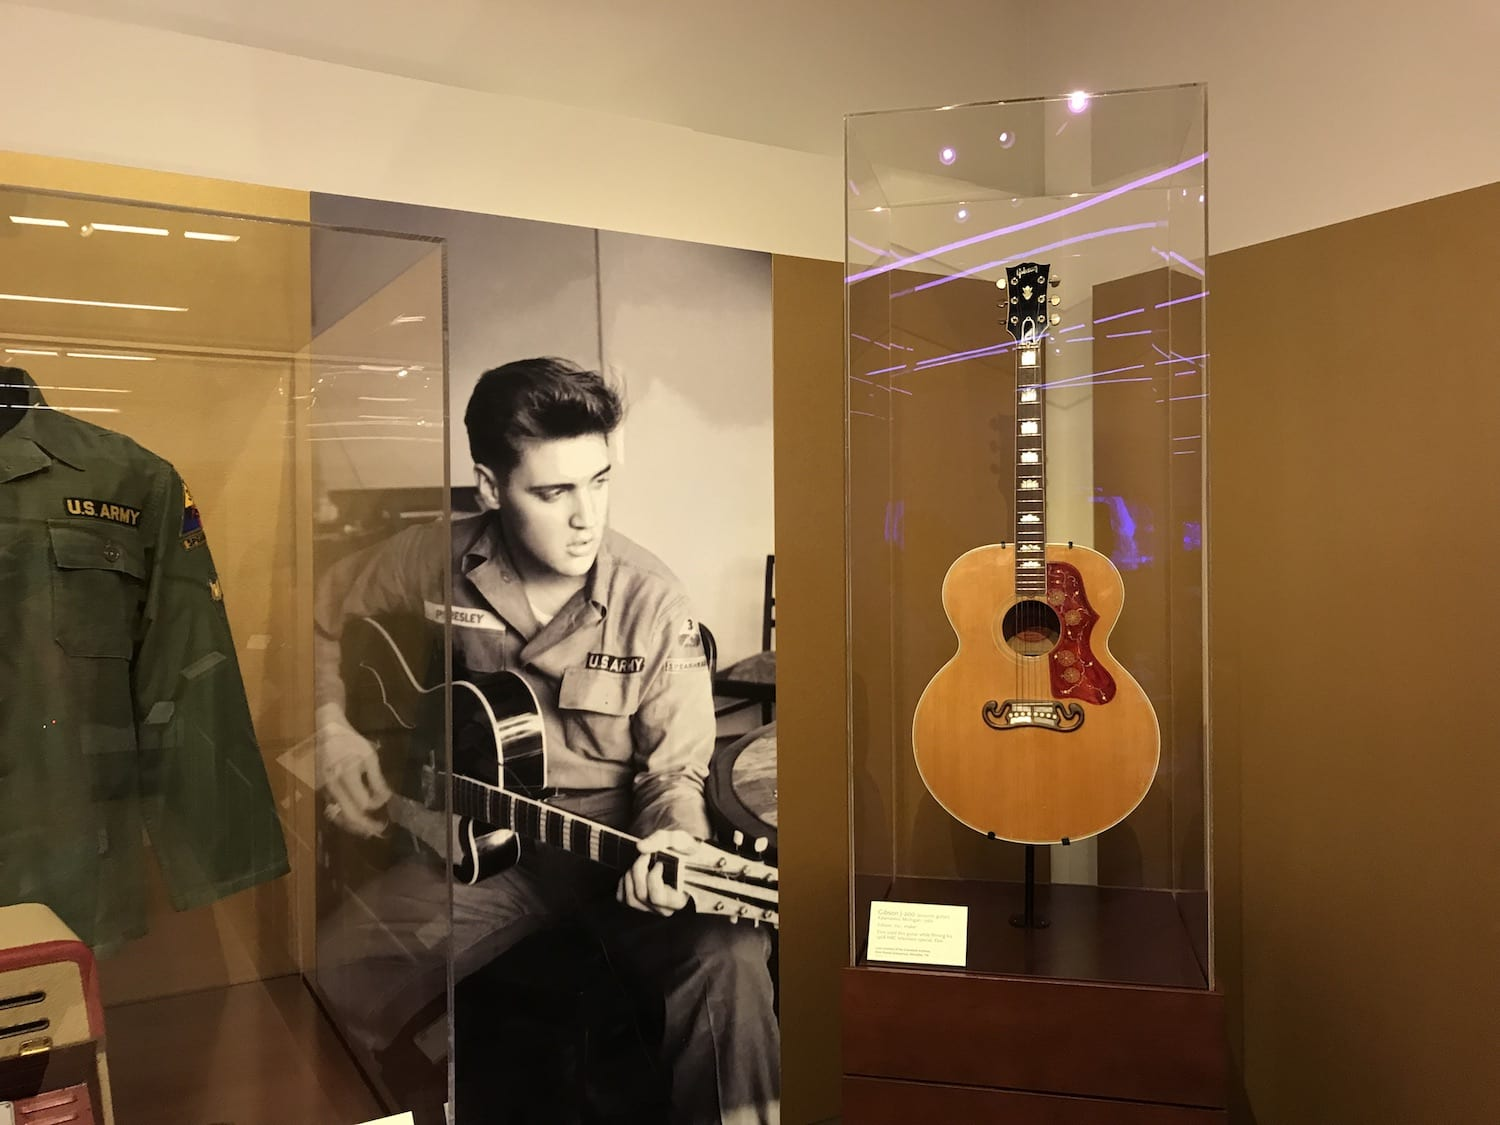 Elvis Presley Artist Exhibit